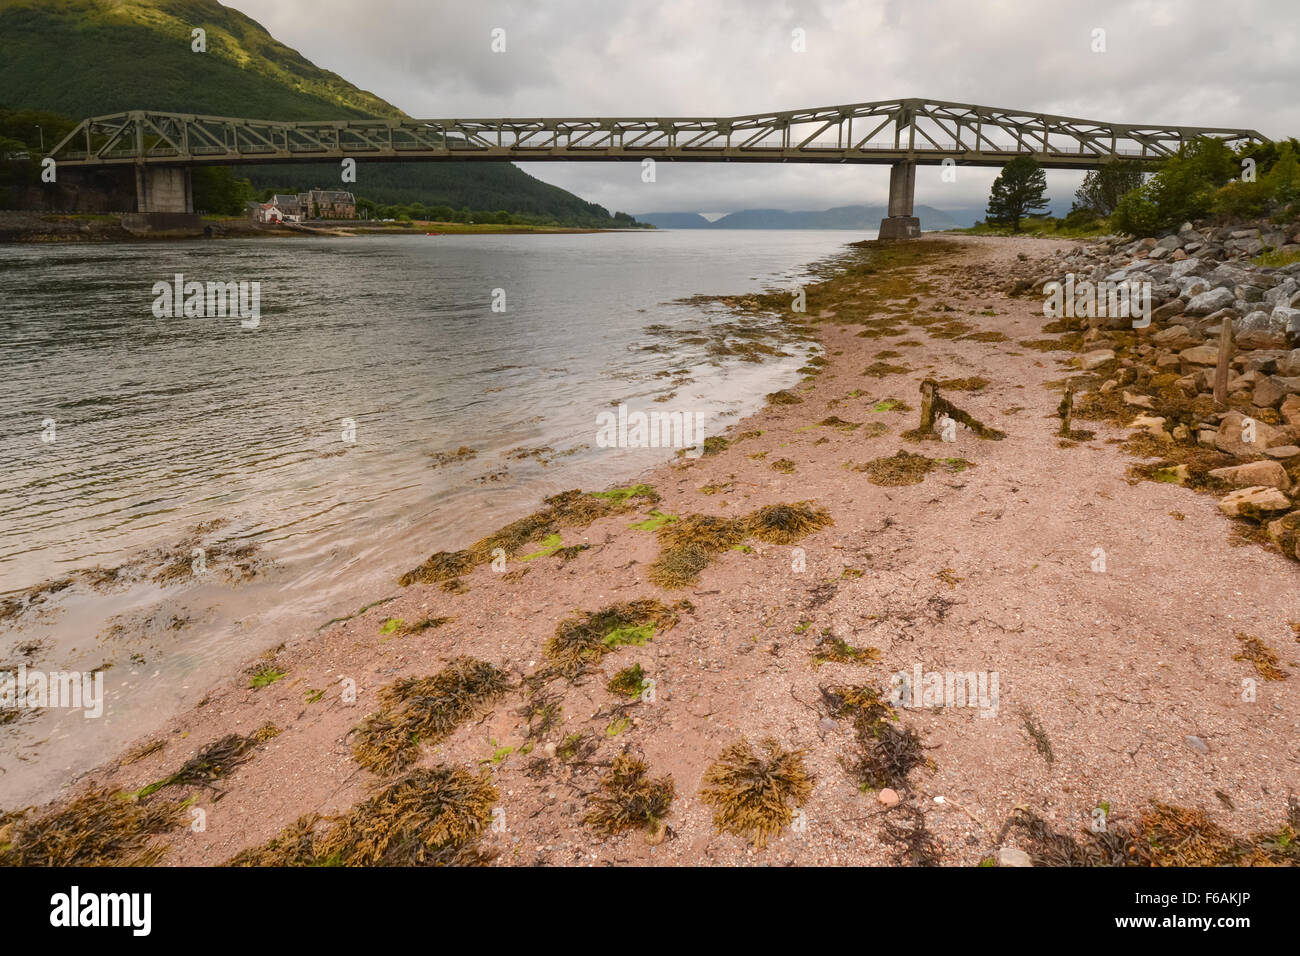 Ballachulish bridge carrying the A82 main route between Glasgow and Inverness across the narrows between Lochs Leven - Stock Image